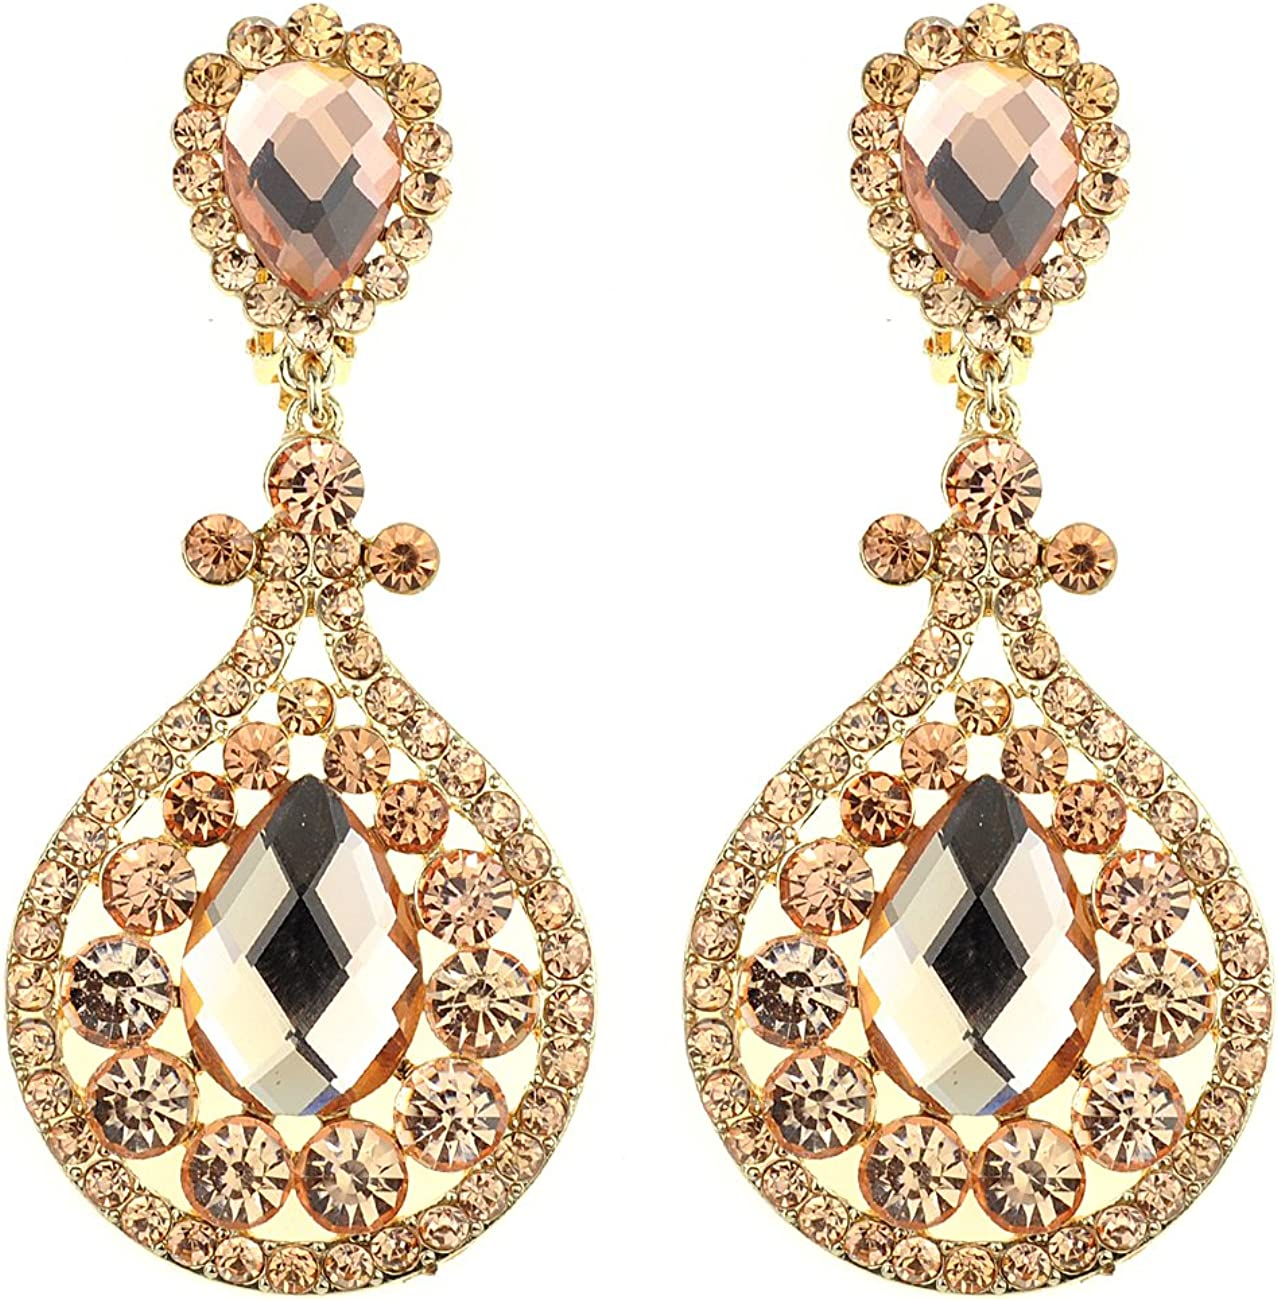 Women's Evening Gala Bridal Prom Wedding Clip On Earrings - Imperial